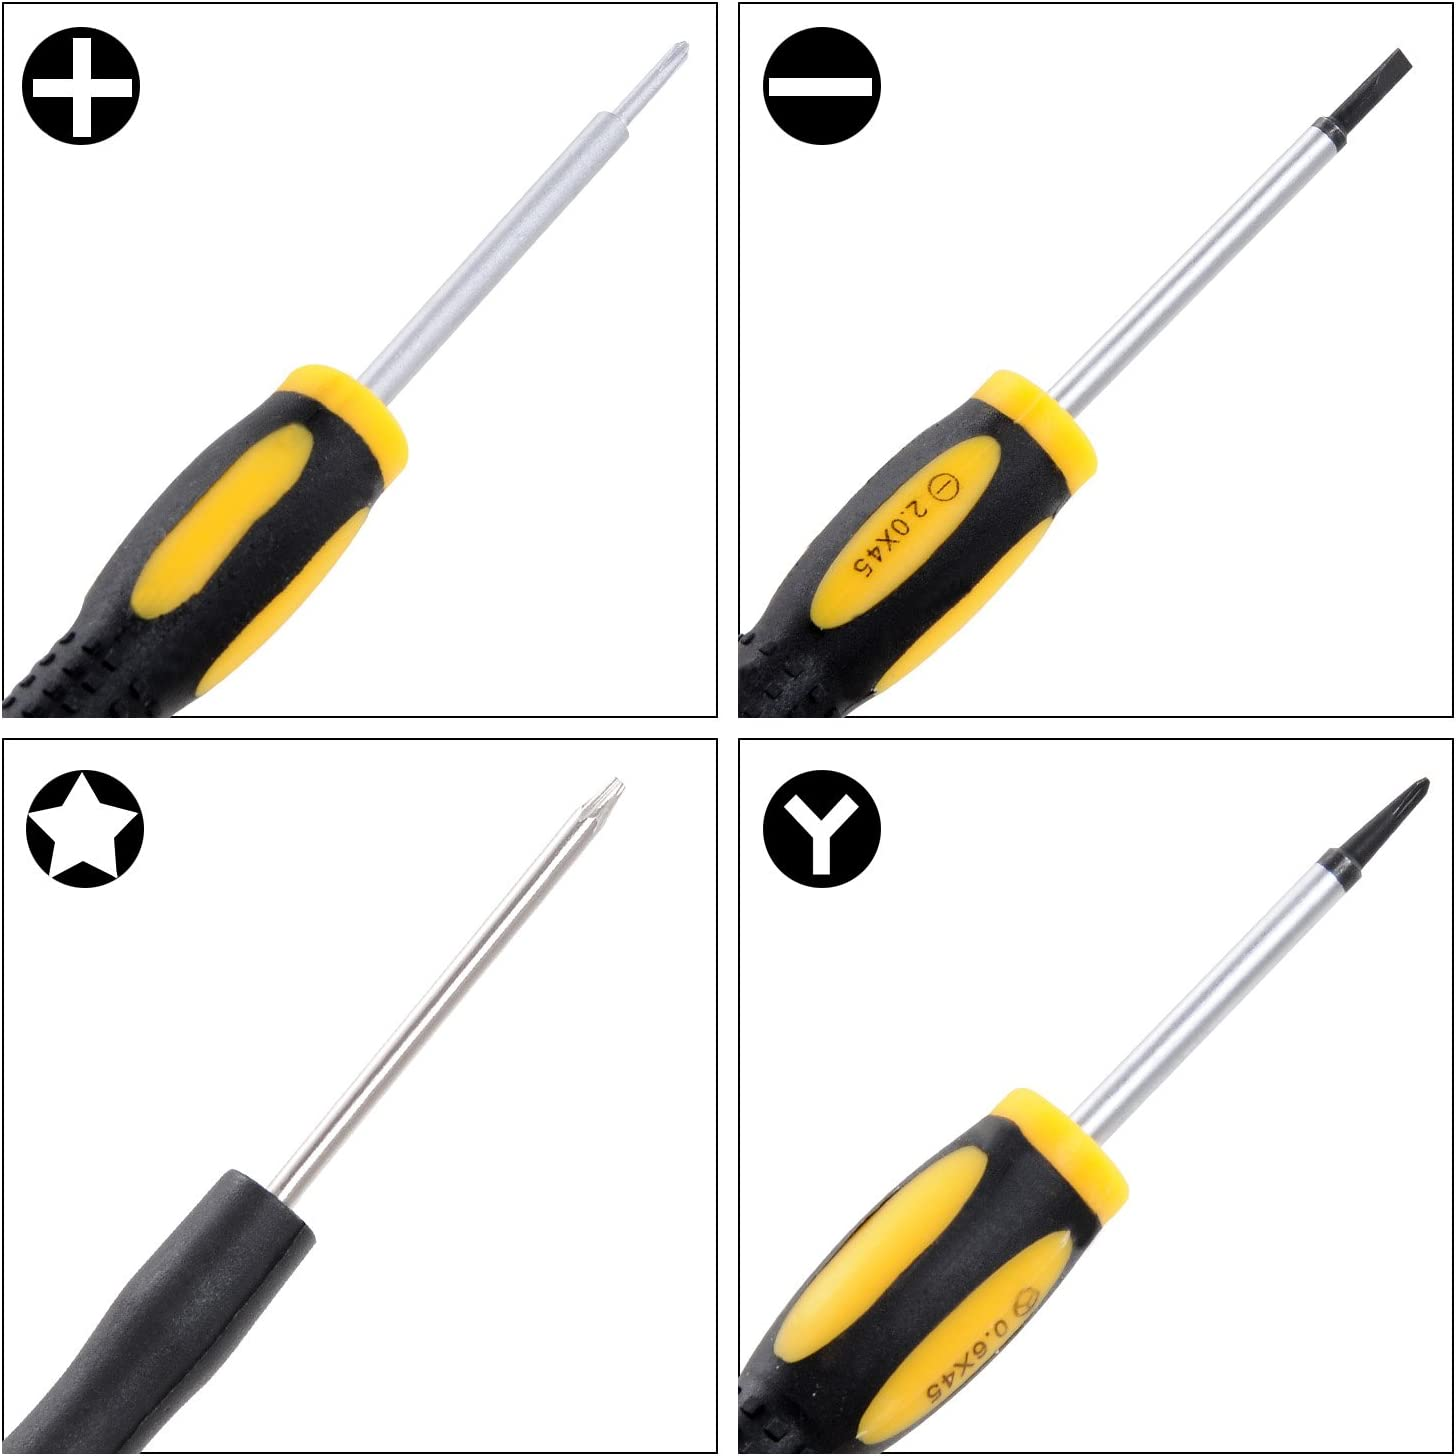 i9300 iPhone 4 /& 4S Family Must-Have Repair Tool for iPhone 5 Other Mobile Phone 8 in 1 Professional Versatile Screwdrivers Set for Phone Convenient iPad//Samsung Galaxy S IV i9500 S III